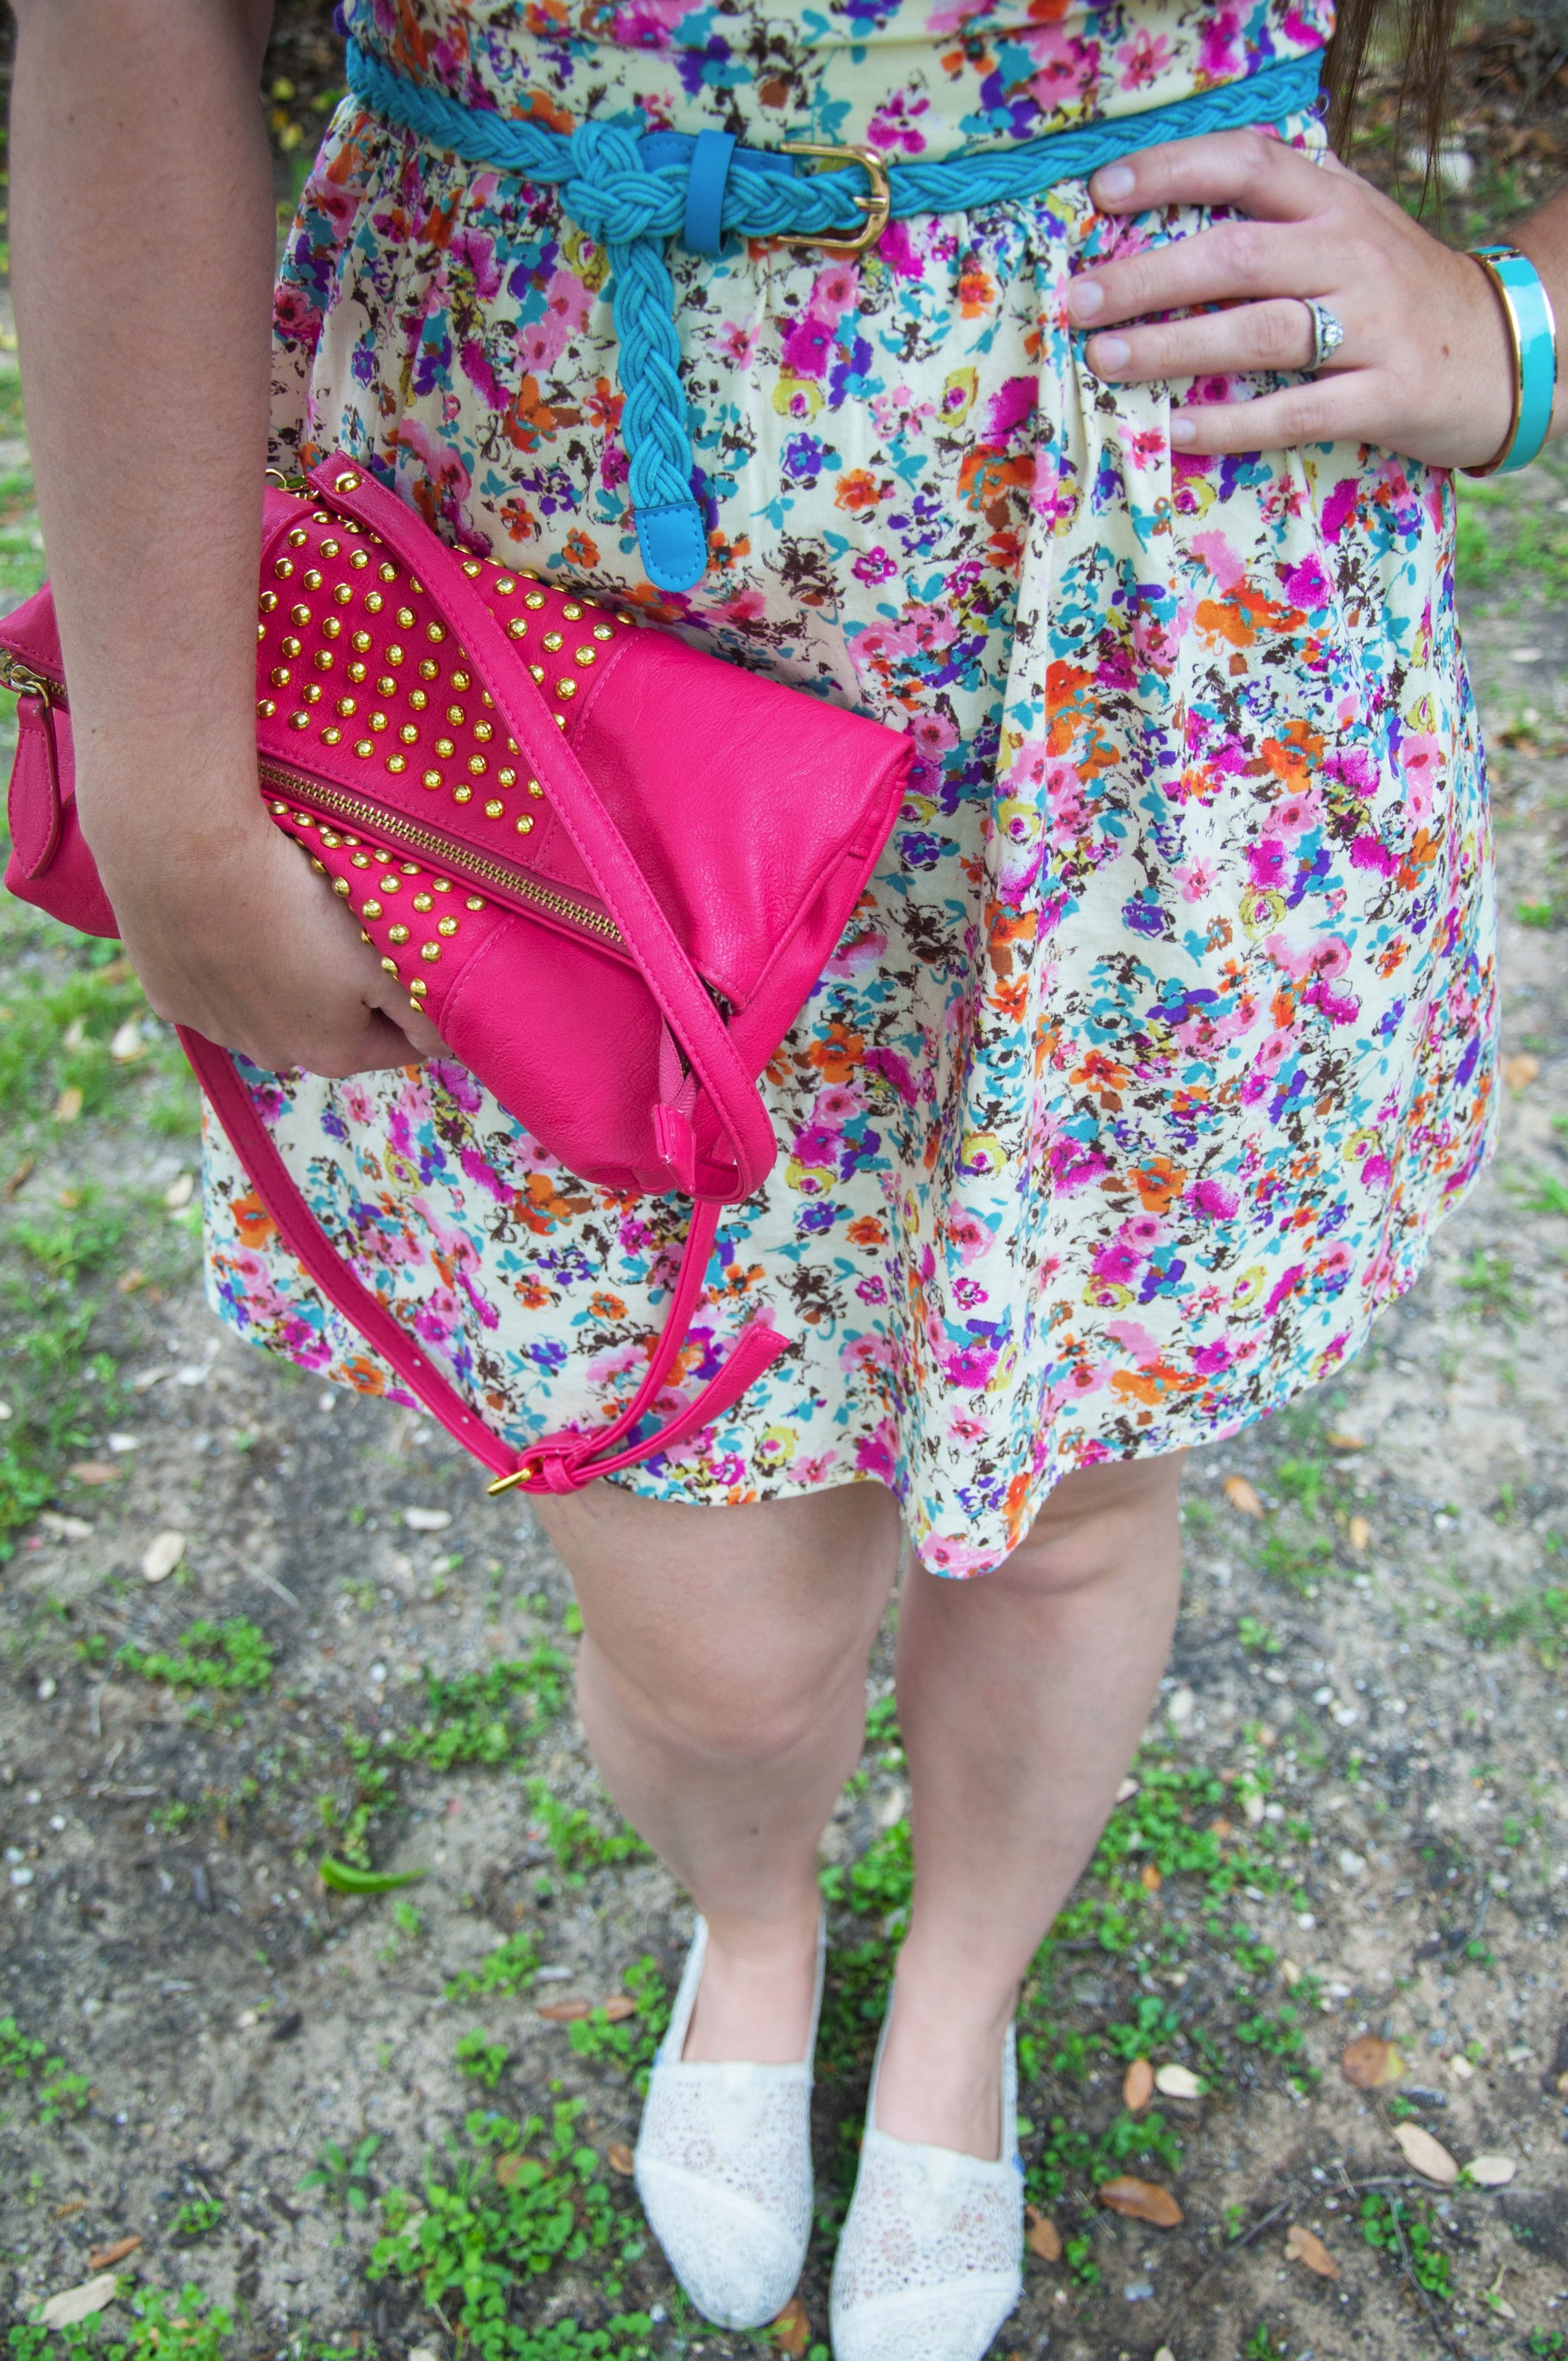 Floral dress with turquoise and pink